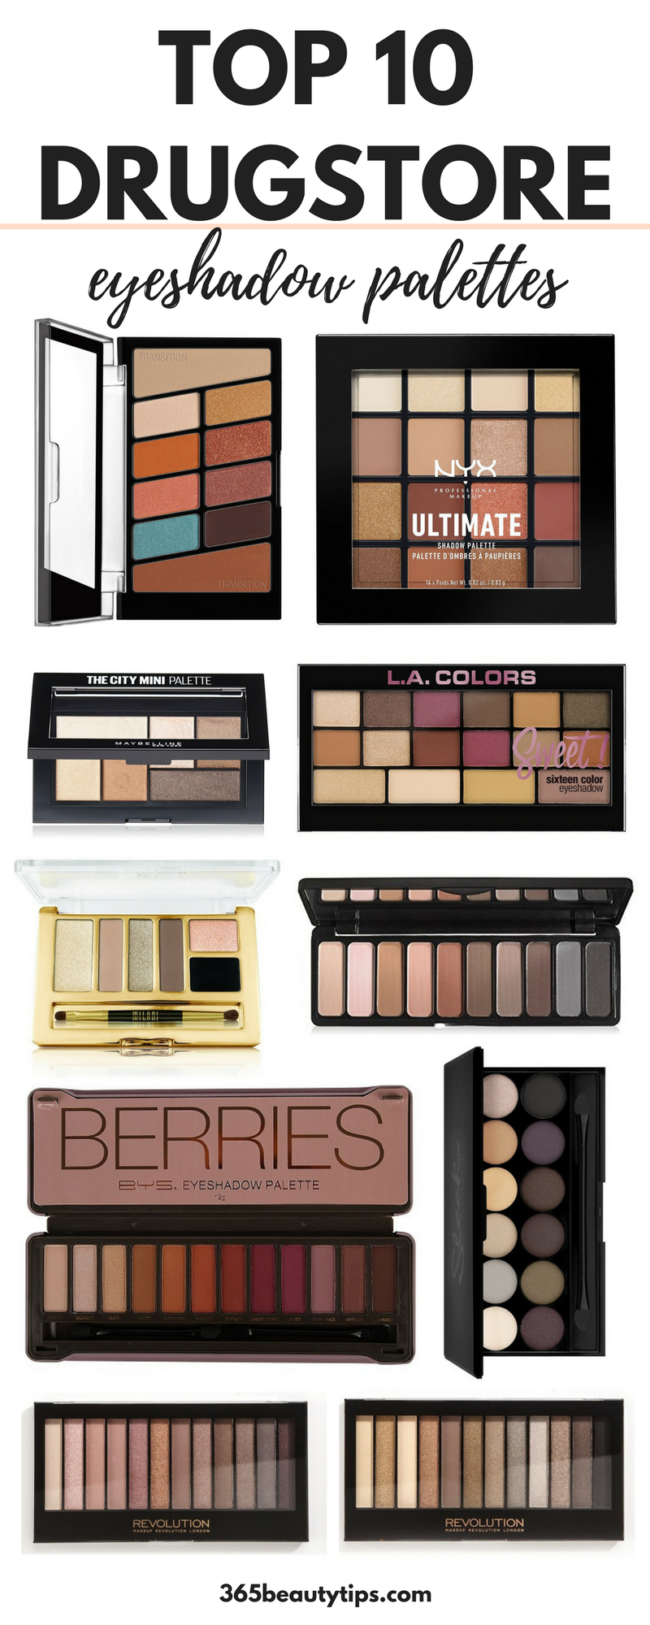 The Best Drugstore Eyeshadow Palettes - 365BeautyTips